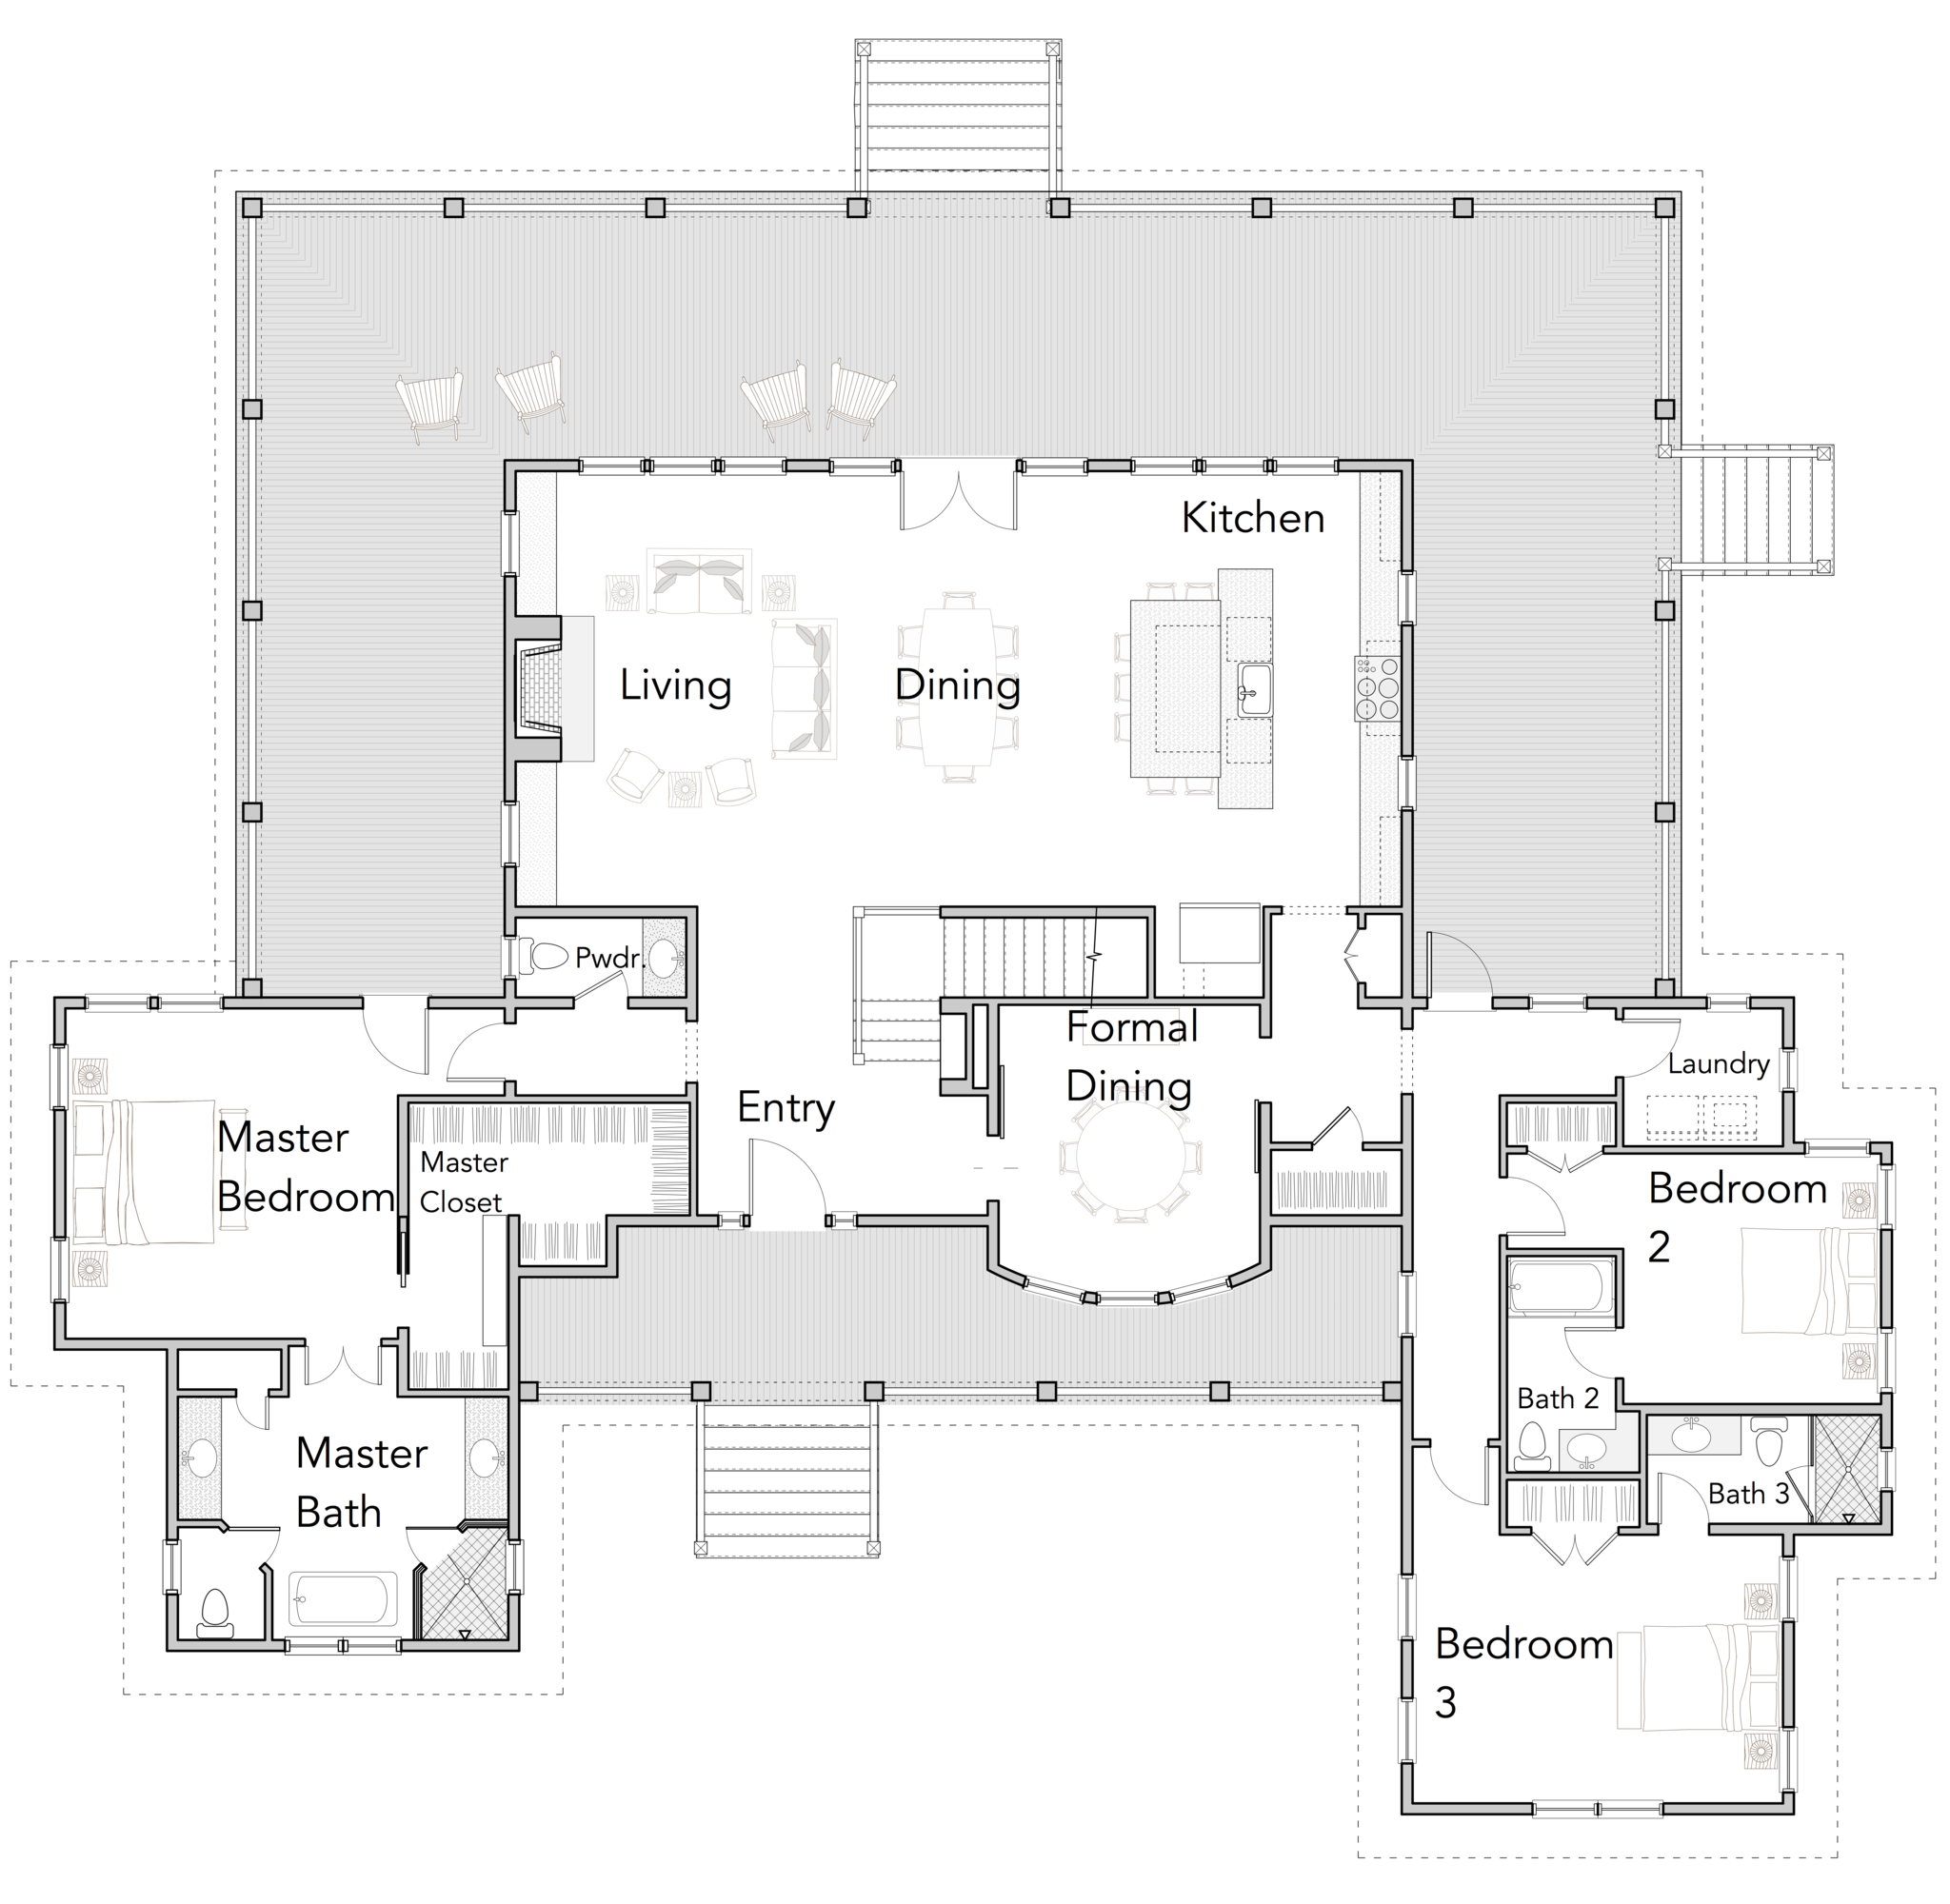 Large open floor plans with wrap around porches rest collection flatfish island designs - Home plans wrap around porch pict ...